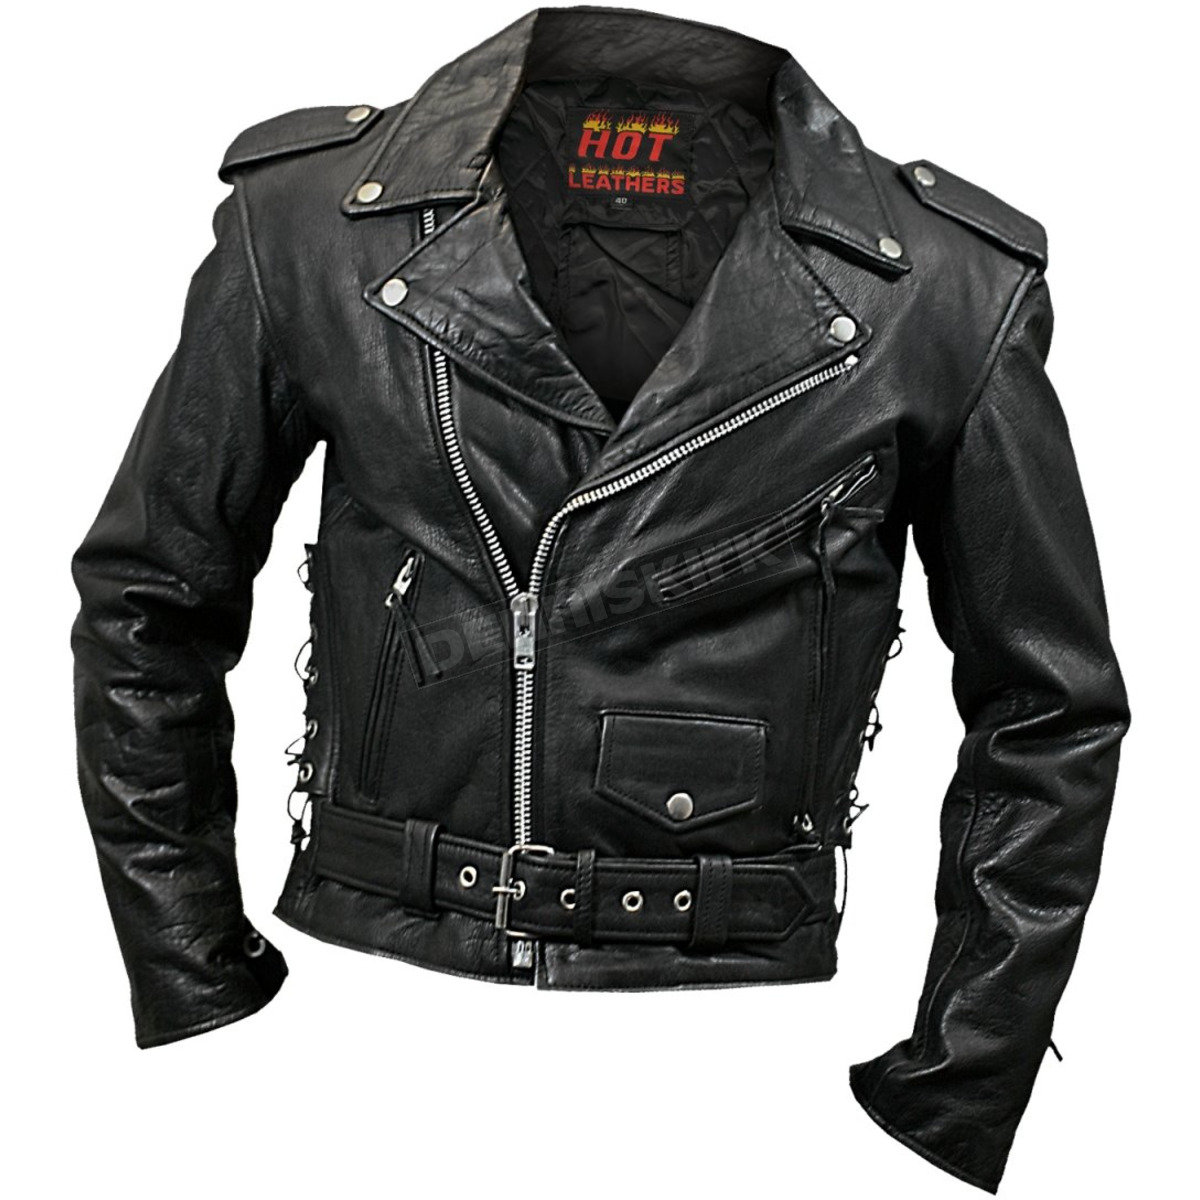 Hot Leathers Mens Classic Leather Motorcycle Jacket Jkm1002 38